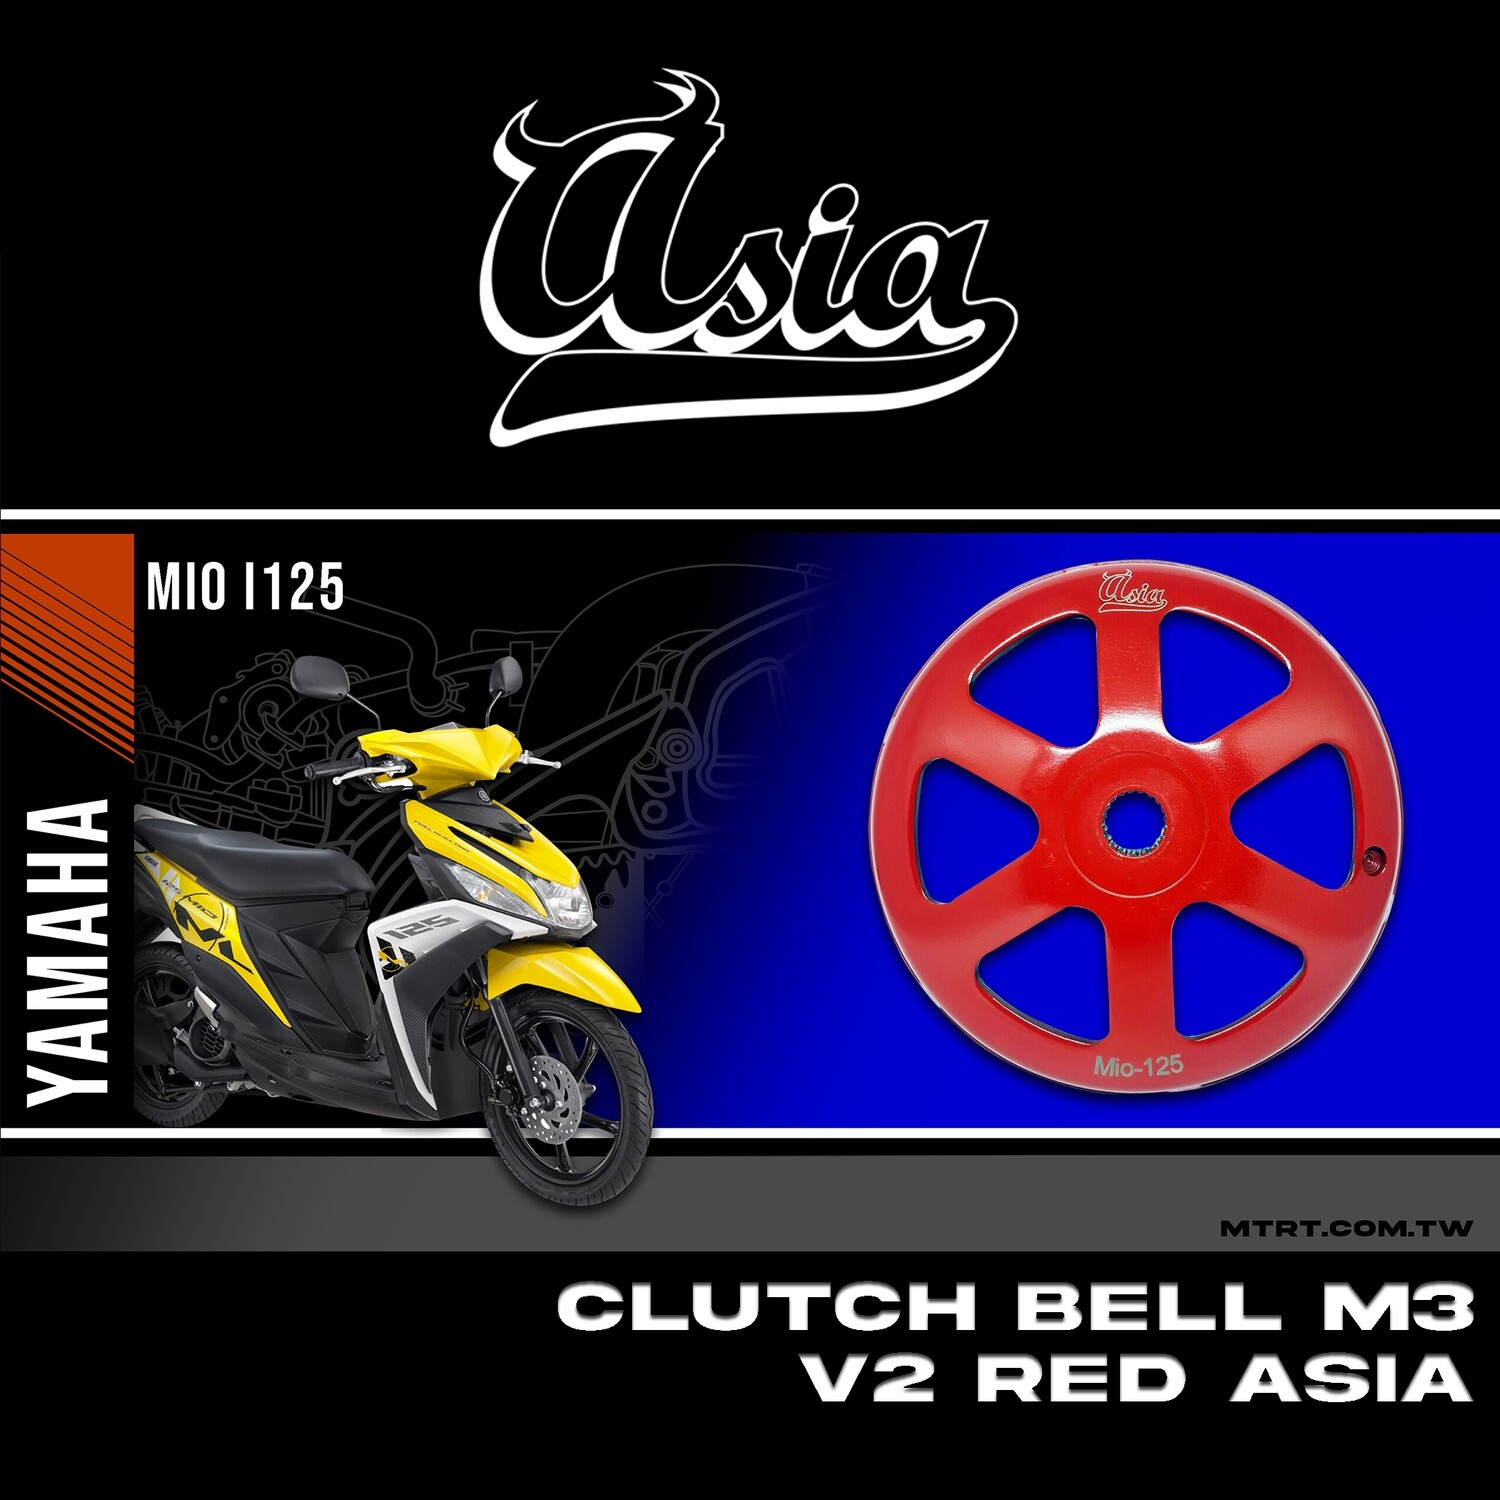 CLUTCH BELL V2 M3 MIOi125 RED ASIA